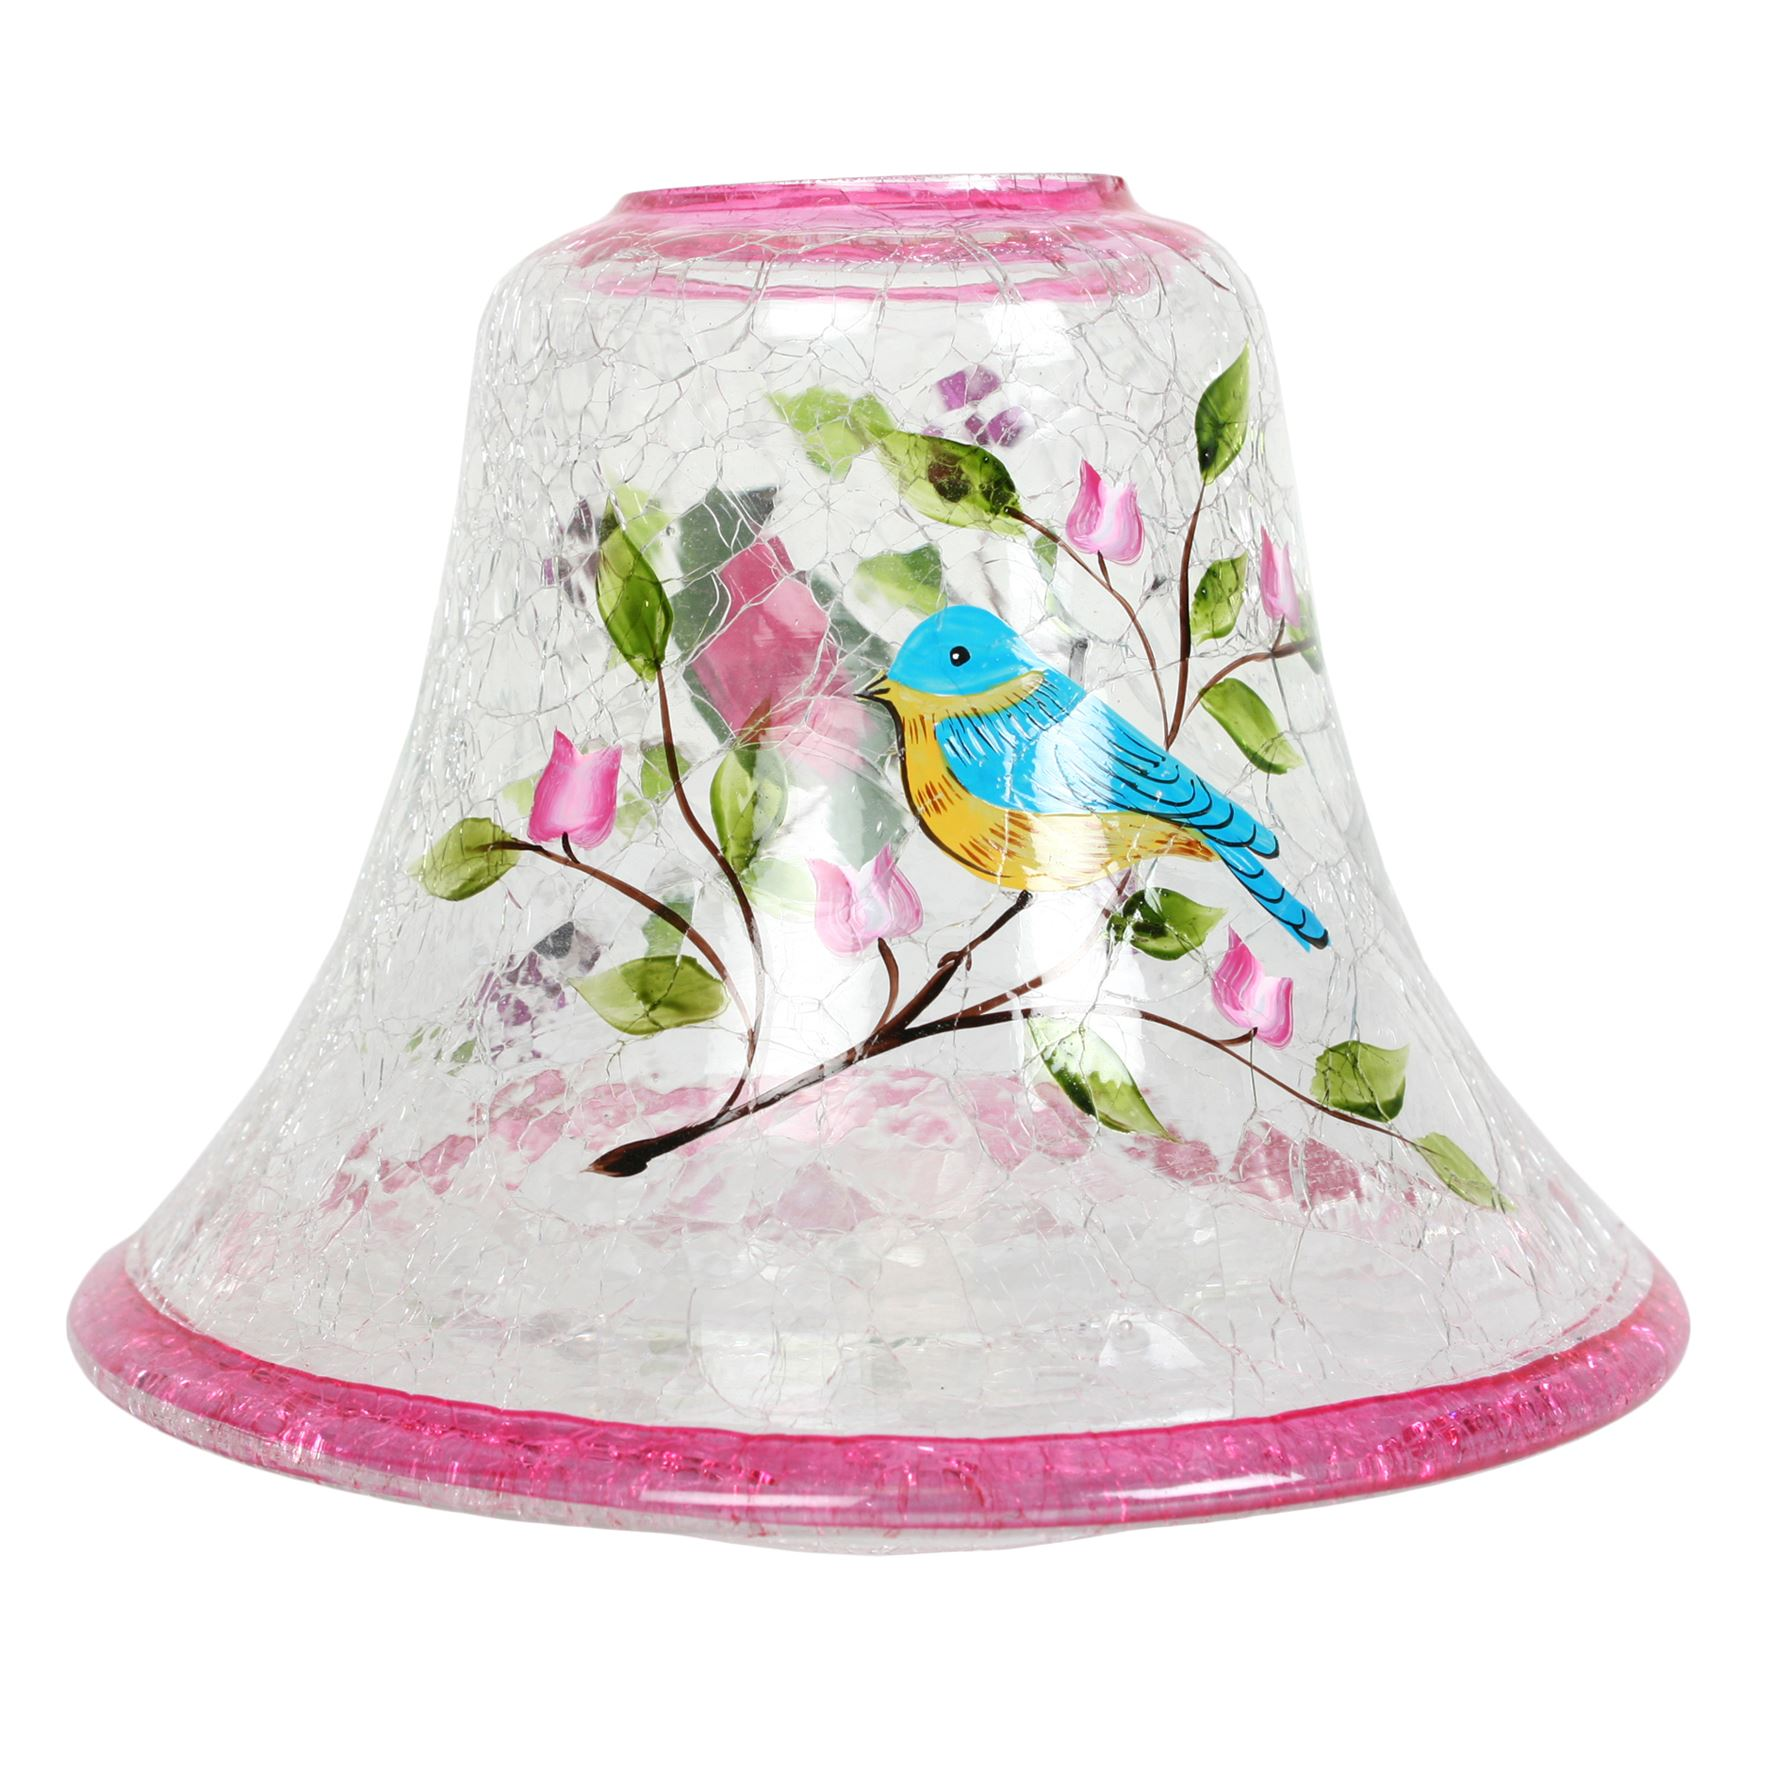 Village candle glass candle jar lamp shade 16cm choose from over 50 village candle glass candle jar lamp shade 16cm aloadofball Image collections